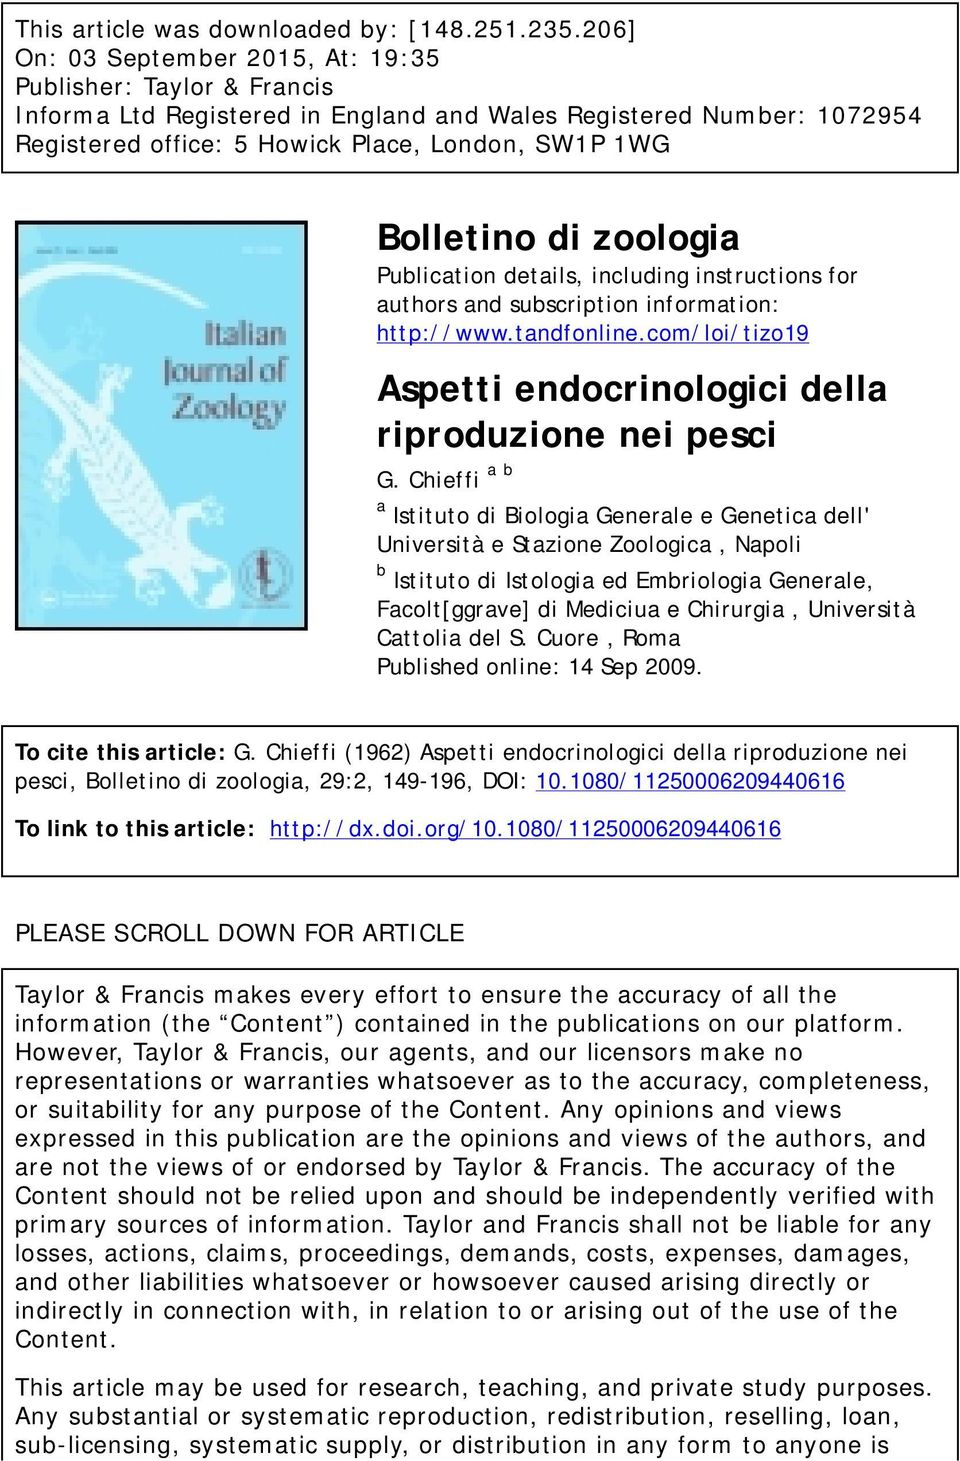 di zoologia Publication details, including instructions for authors and subscription information: http://www.tandfonline.com/loi/tizo19 Aspetti endocrinologici della riproduzione nei pesci G.